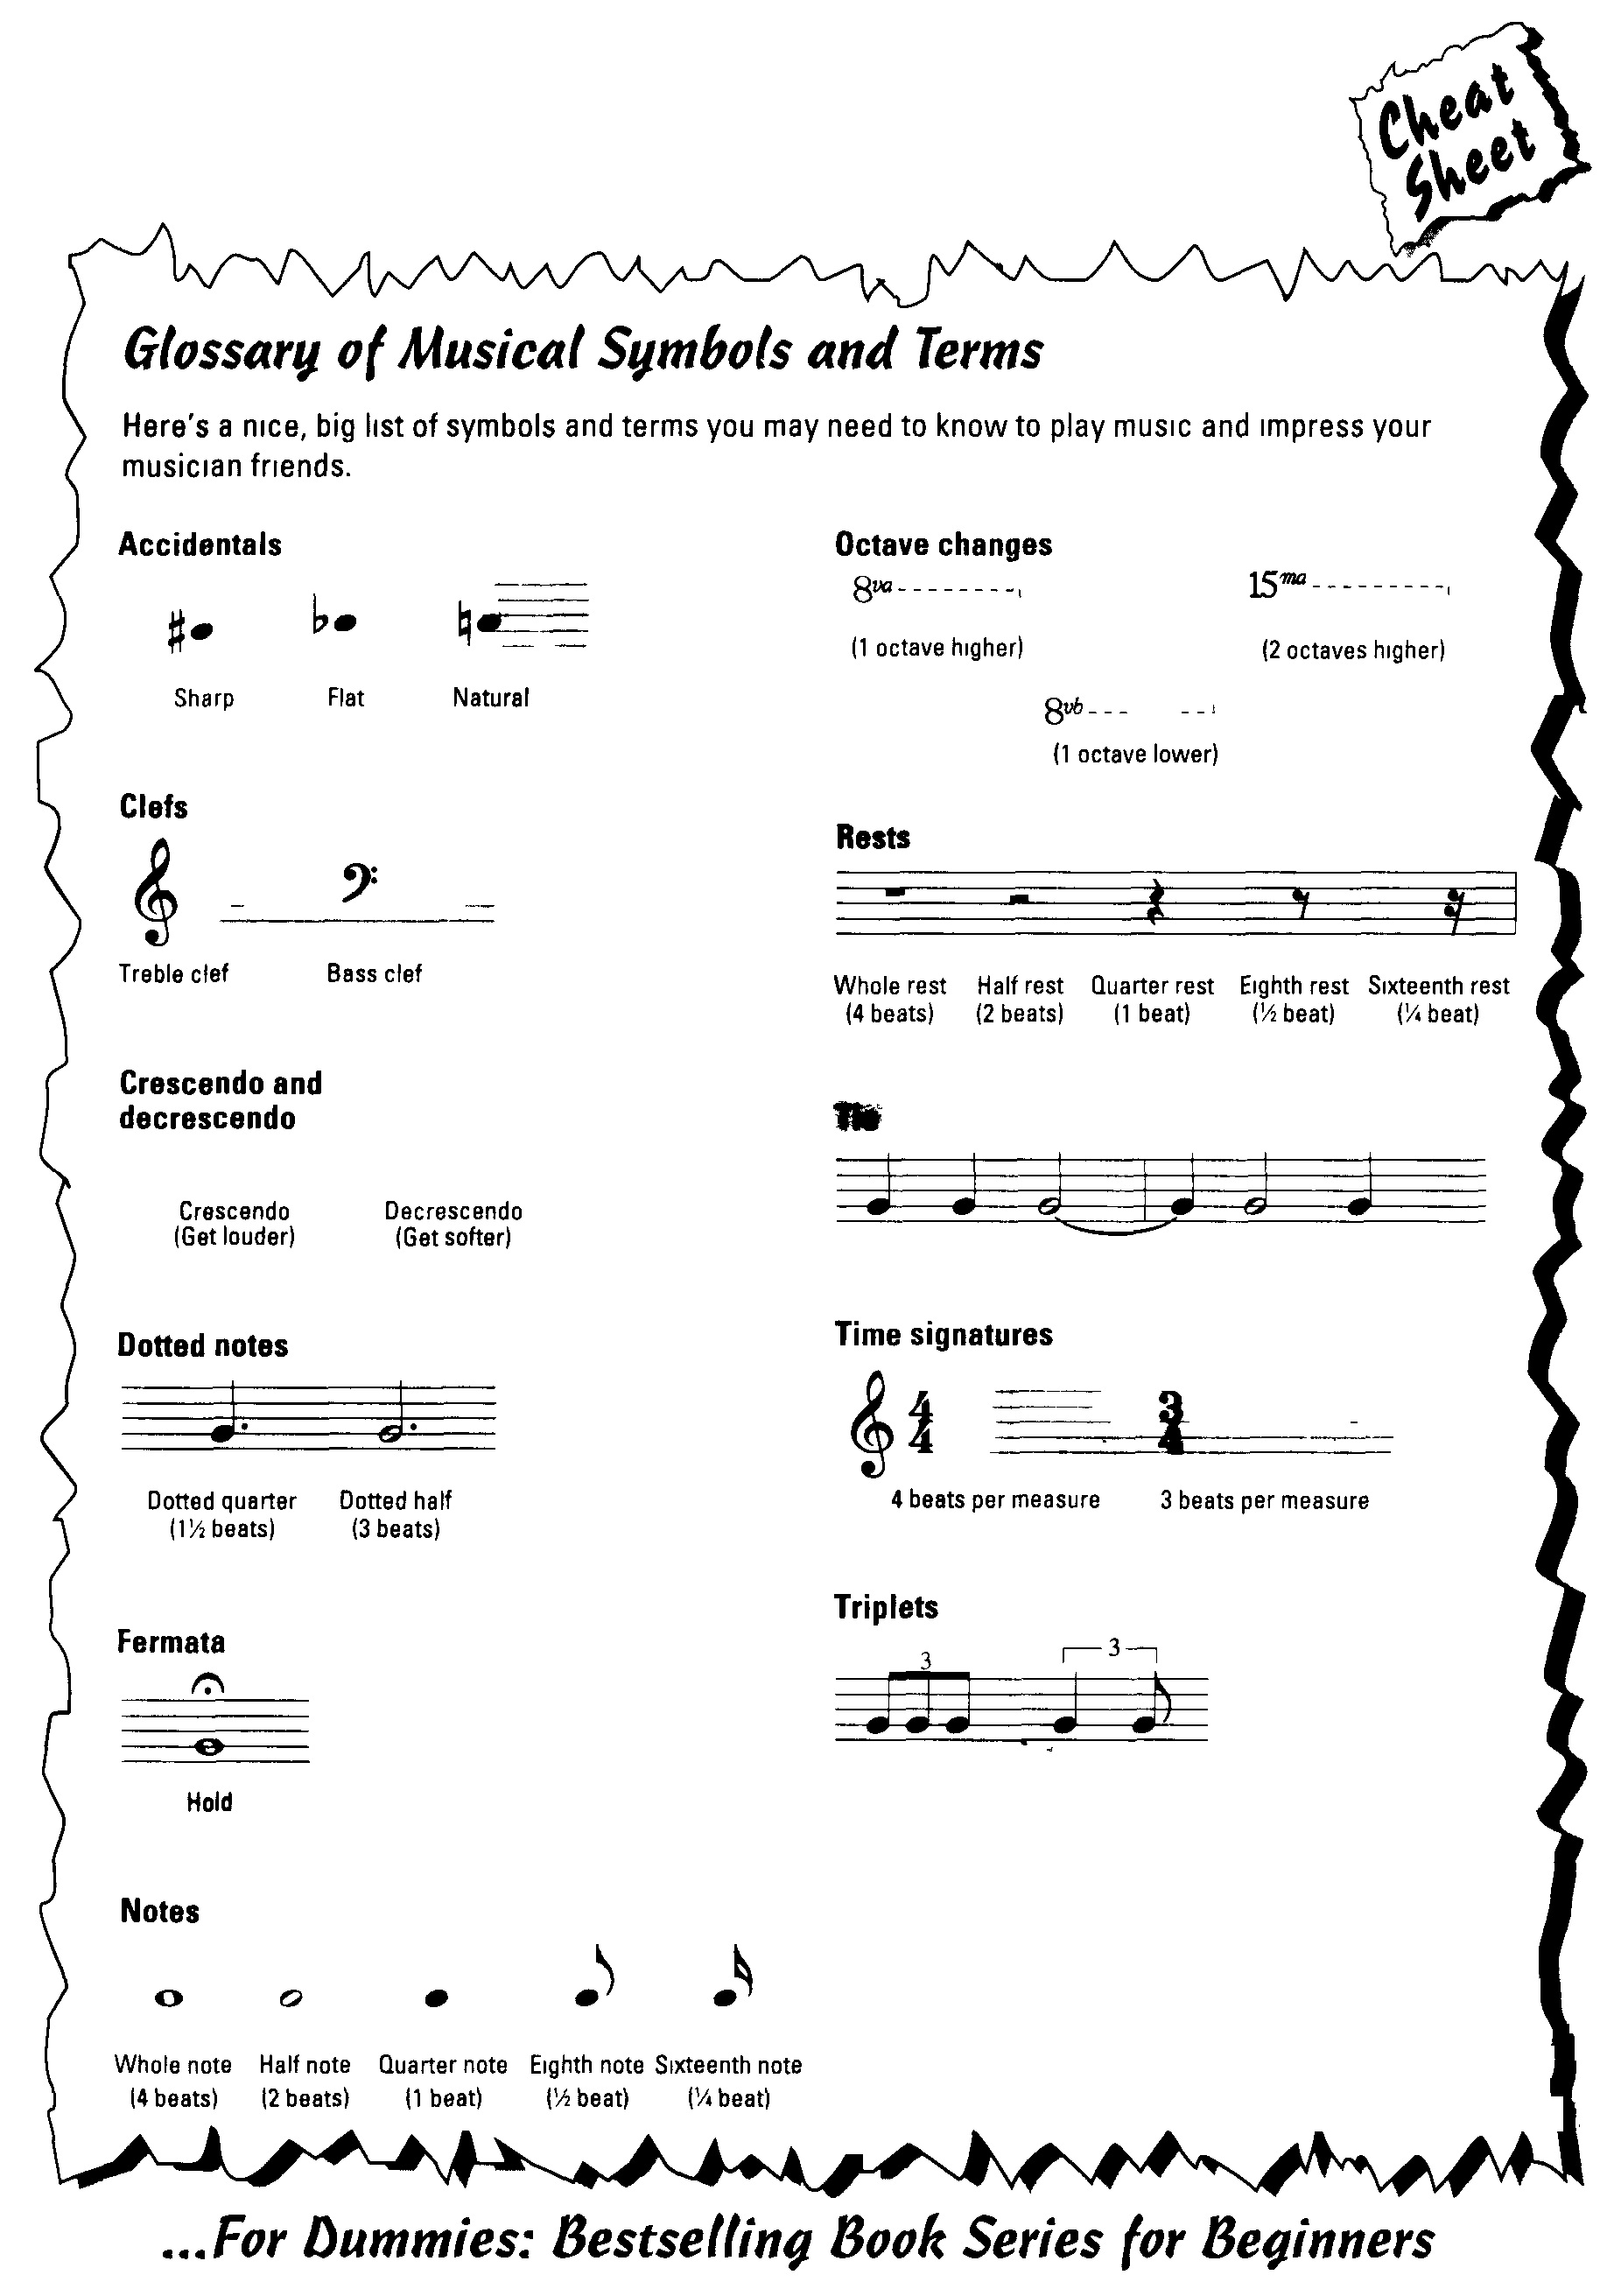 Displaying 20 gt images for sheet music symbols and meanings